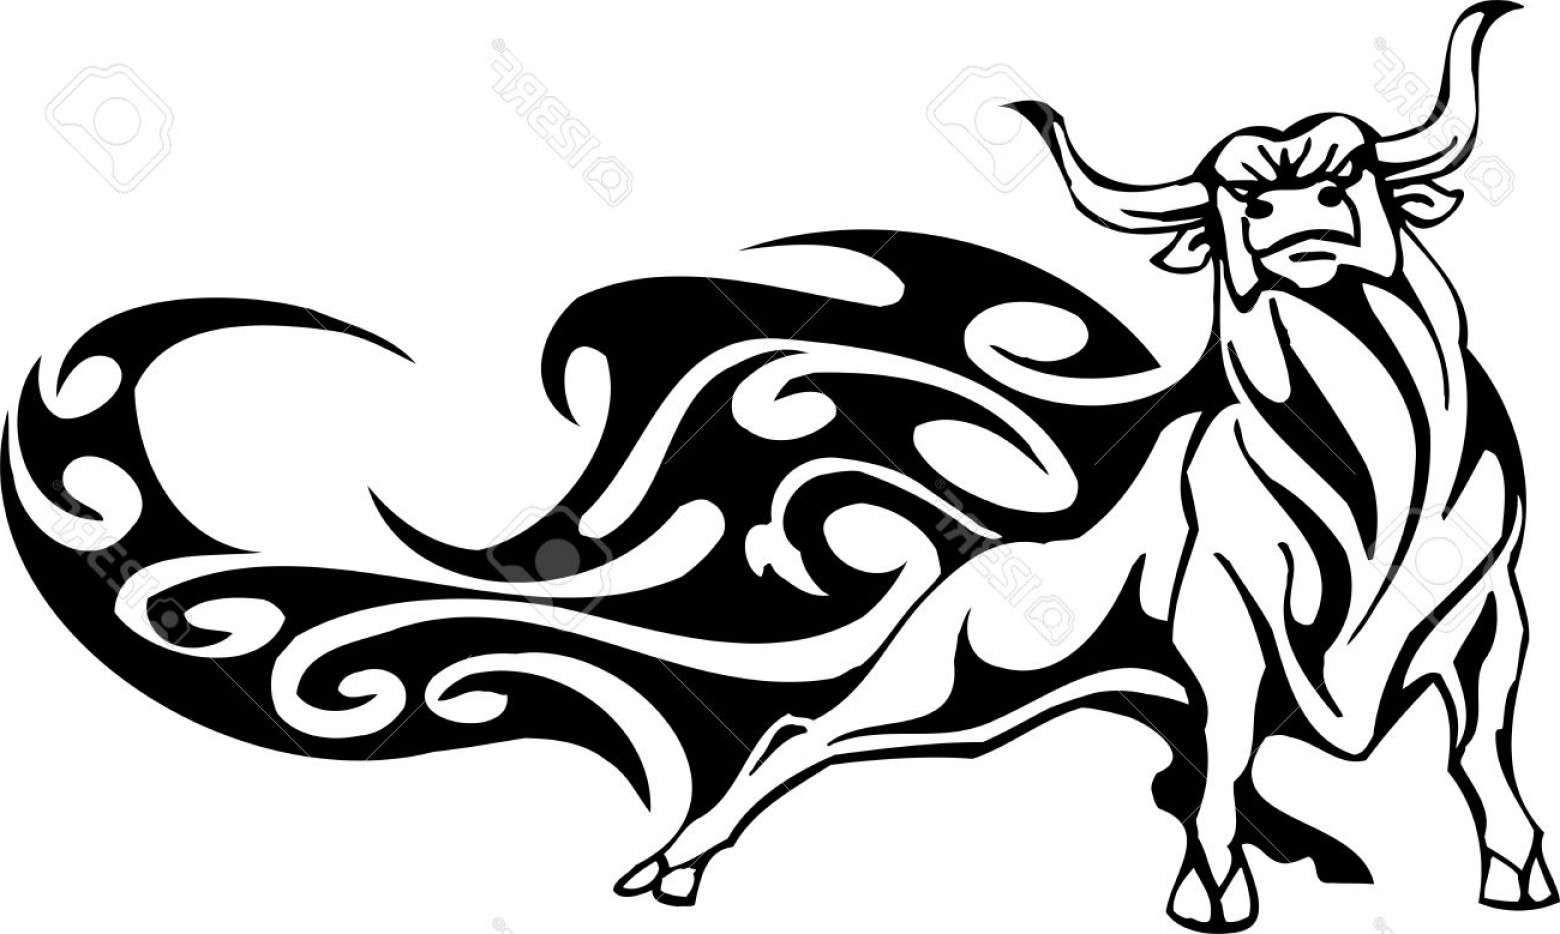 Taurus Vector: Photobull In Tribal Style Vector Image